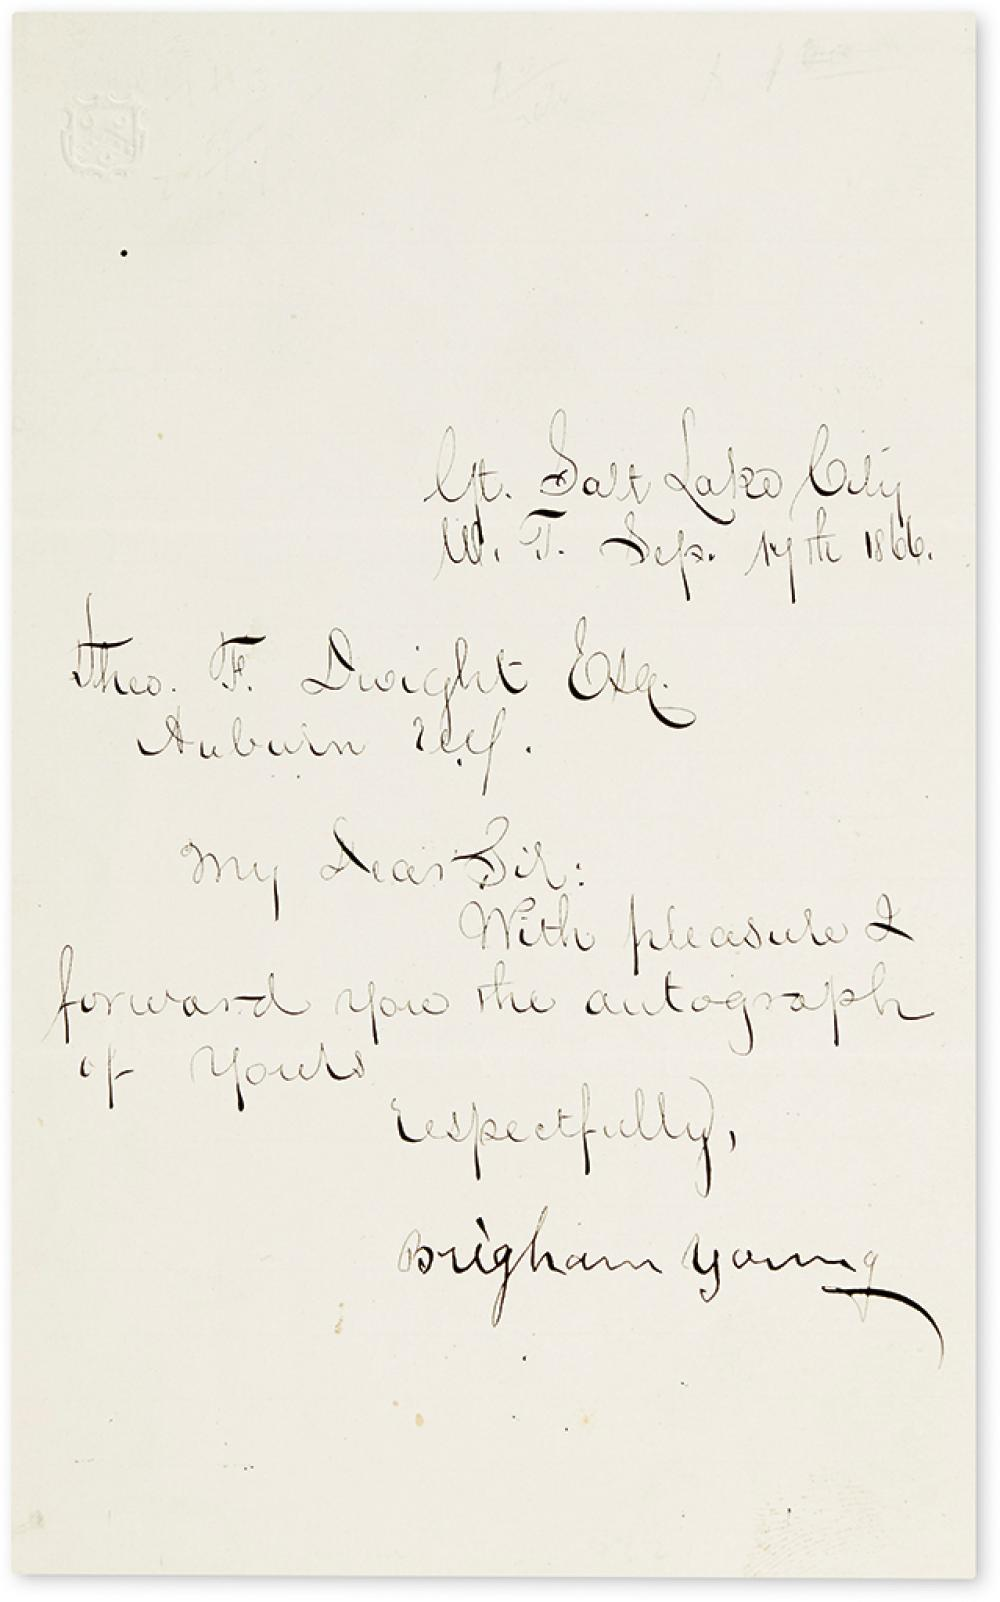 (MORMONS.) YOUNG, BRIGHAM. Brief Letter Signed, to Theodore F. Dwight: